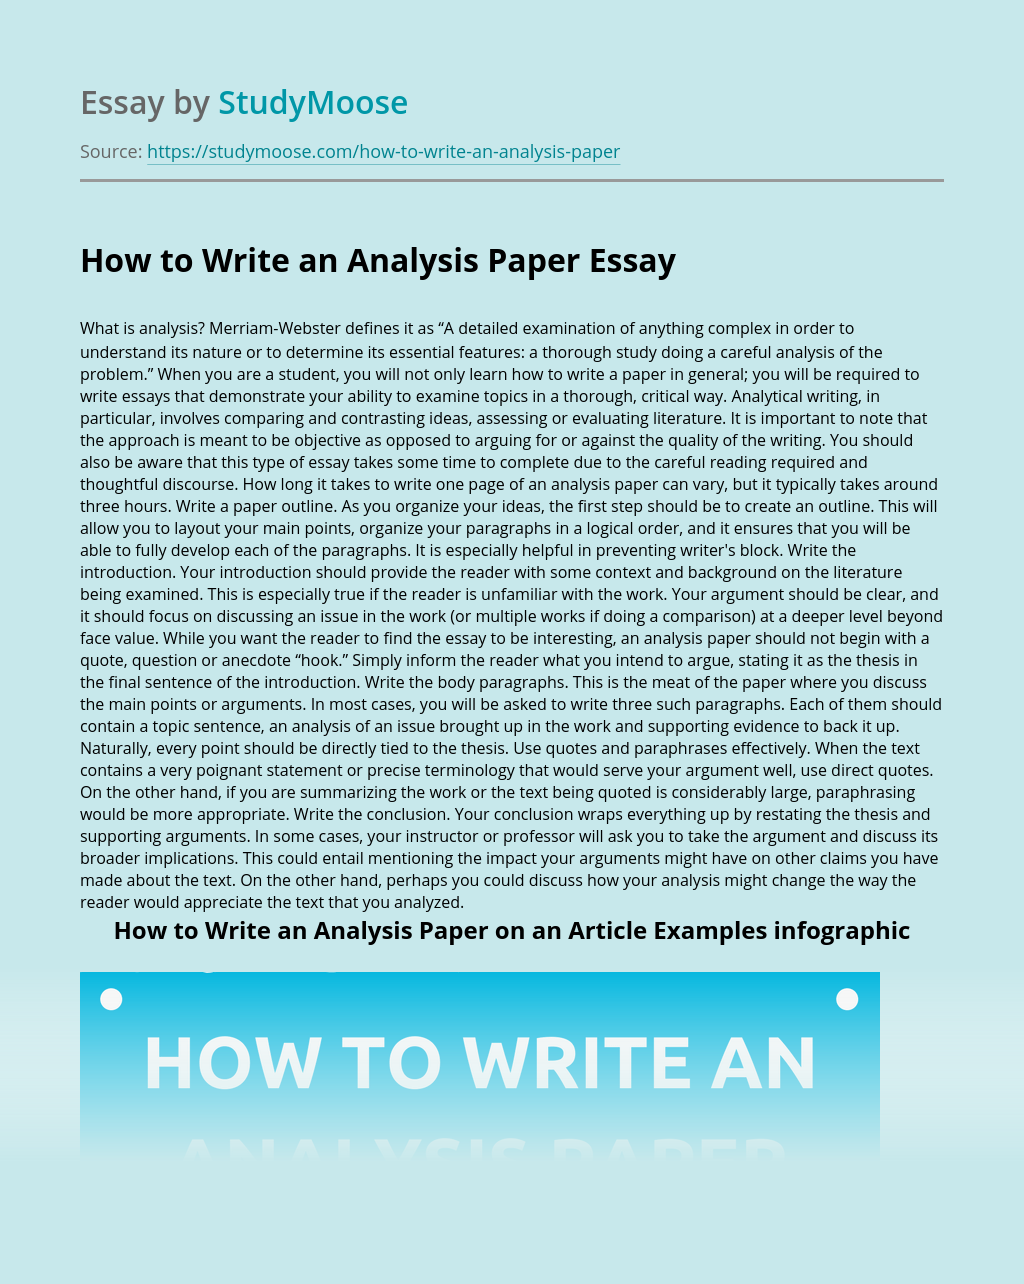 How to Write an Analysis Paper